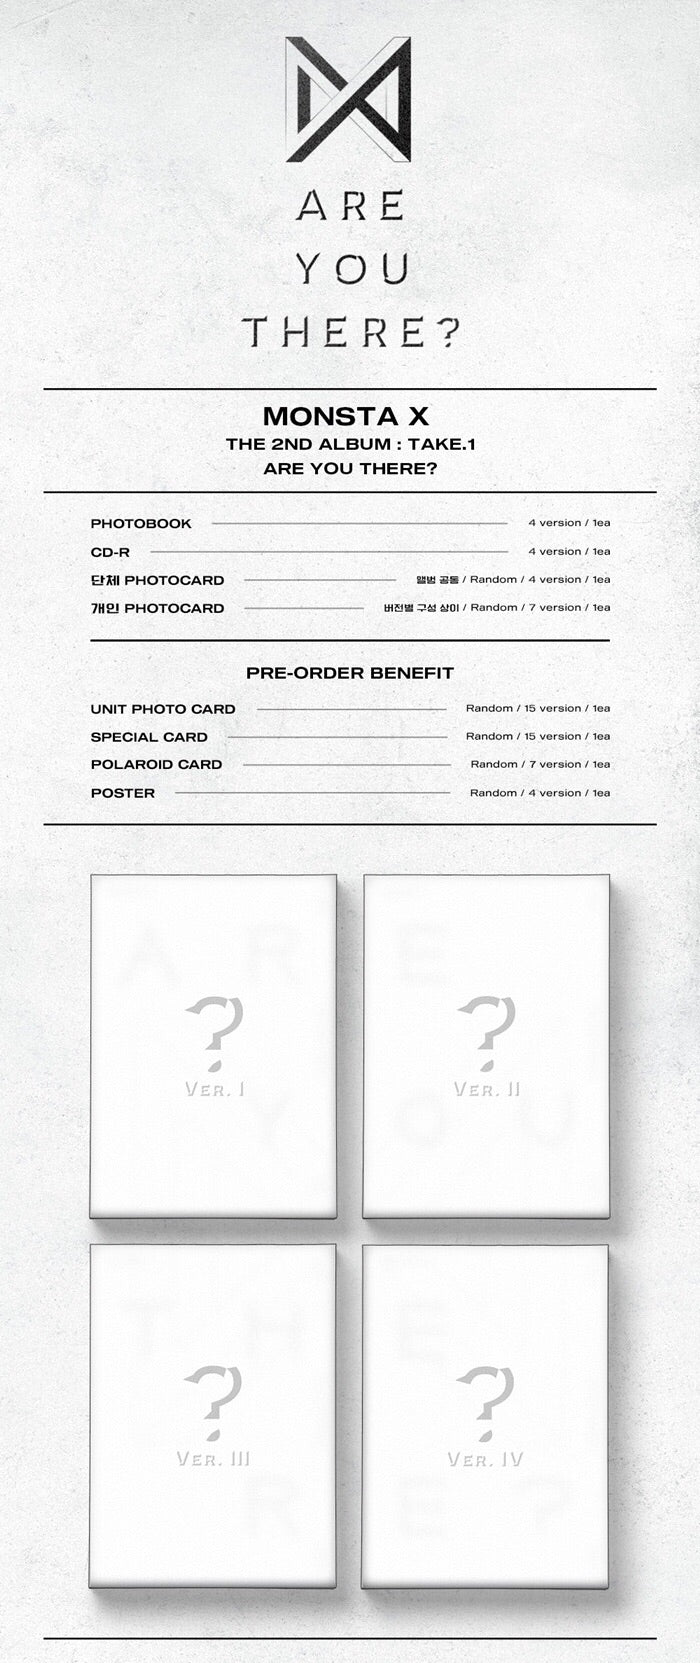 Monsta X - Take. 1 : Are You There (2nd Album) - jetzt lieferbar